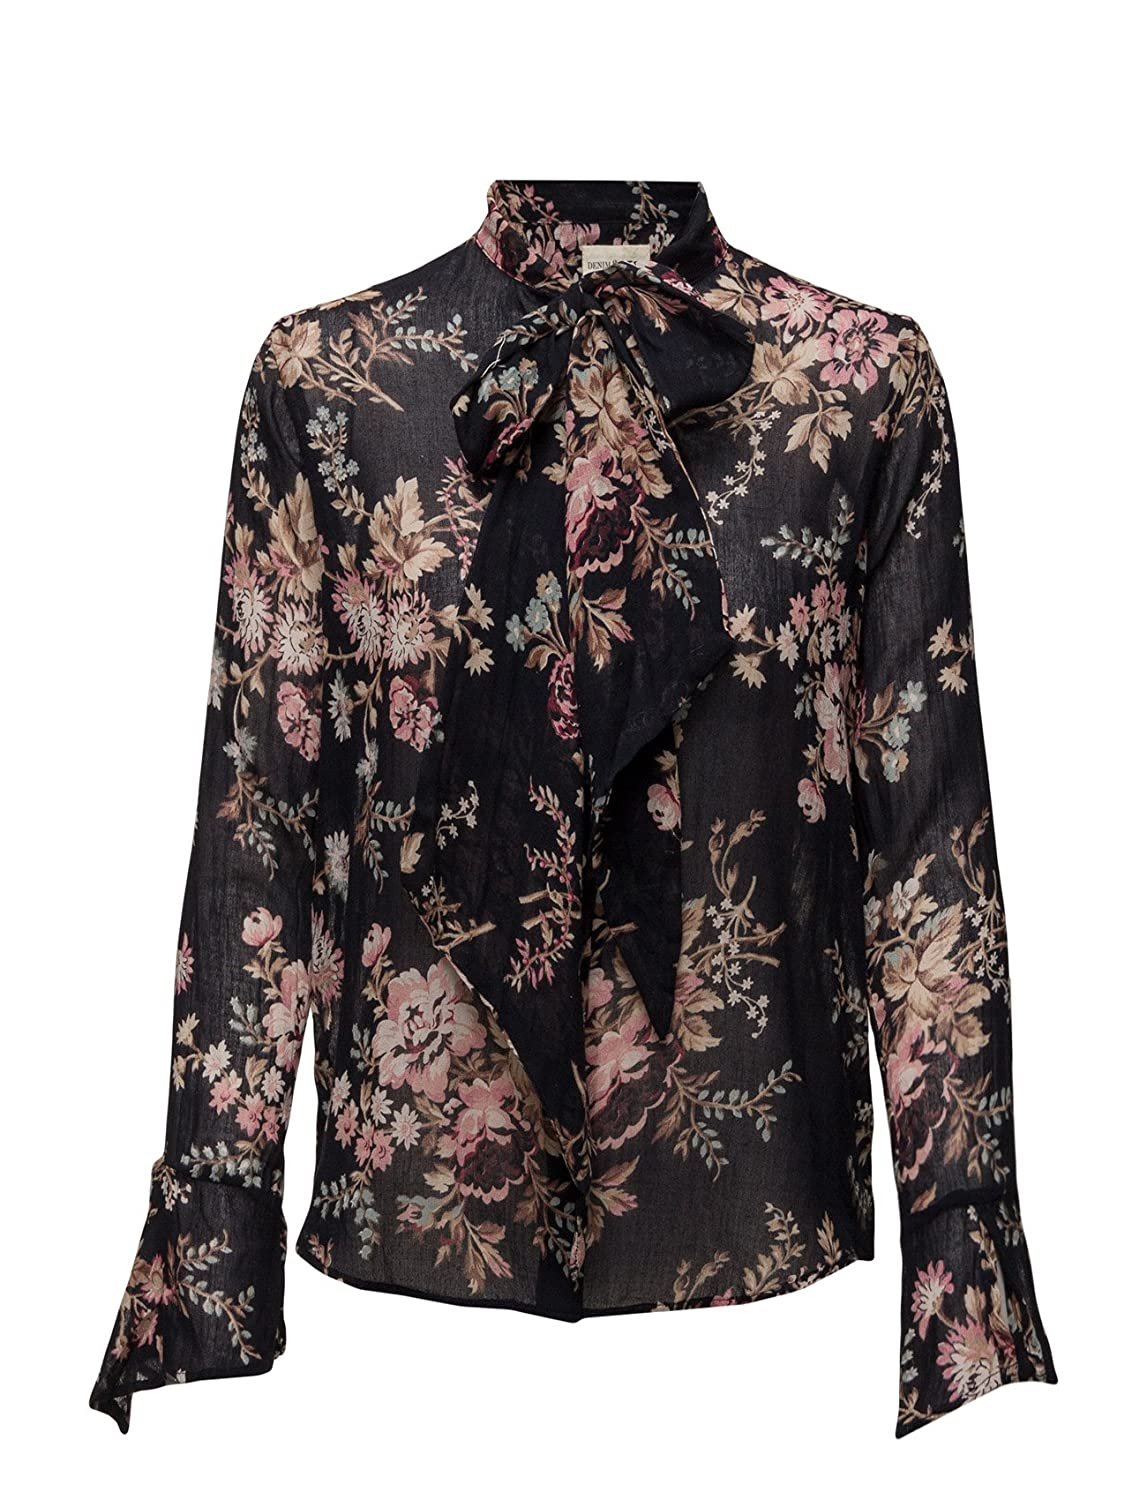 19d0f20b RALPH LAUREN Denim & Supply Women's Floral Print Tie Neck Blouse, Black  Multi (Small) at Amazon Women's Clothing store: